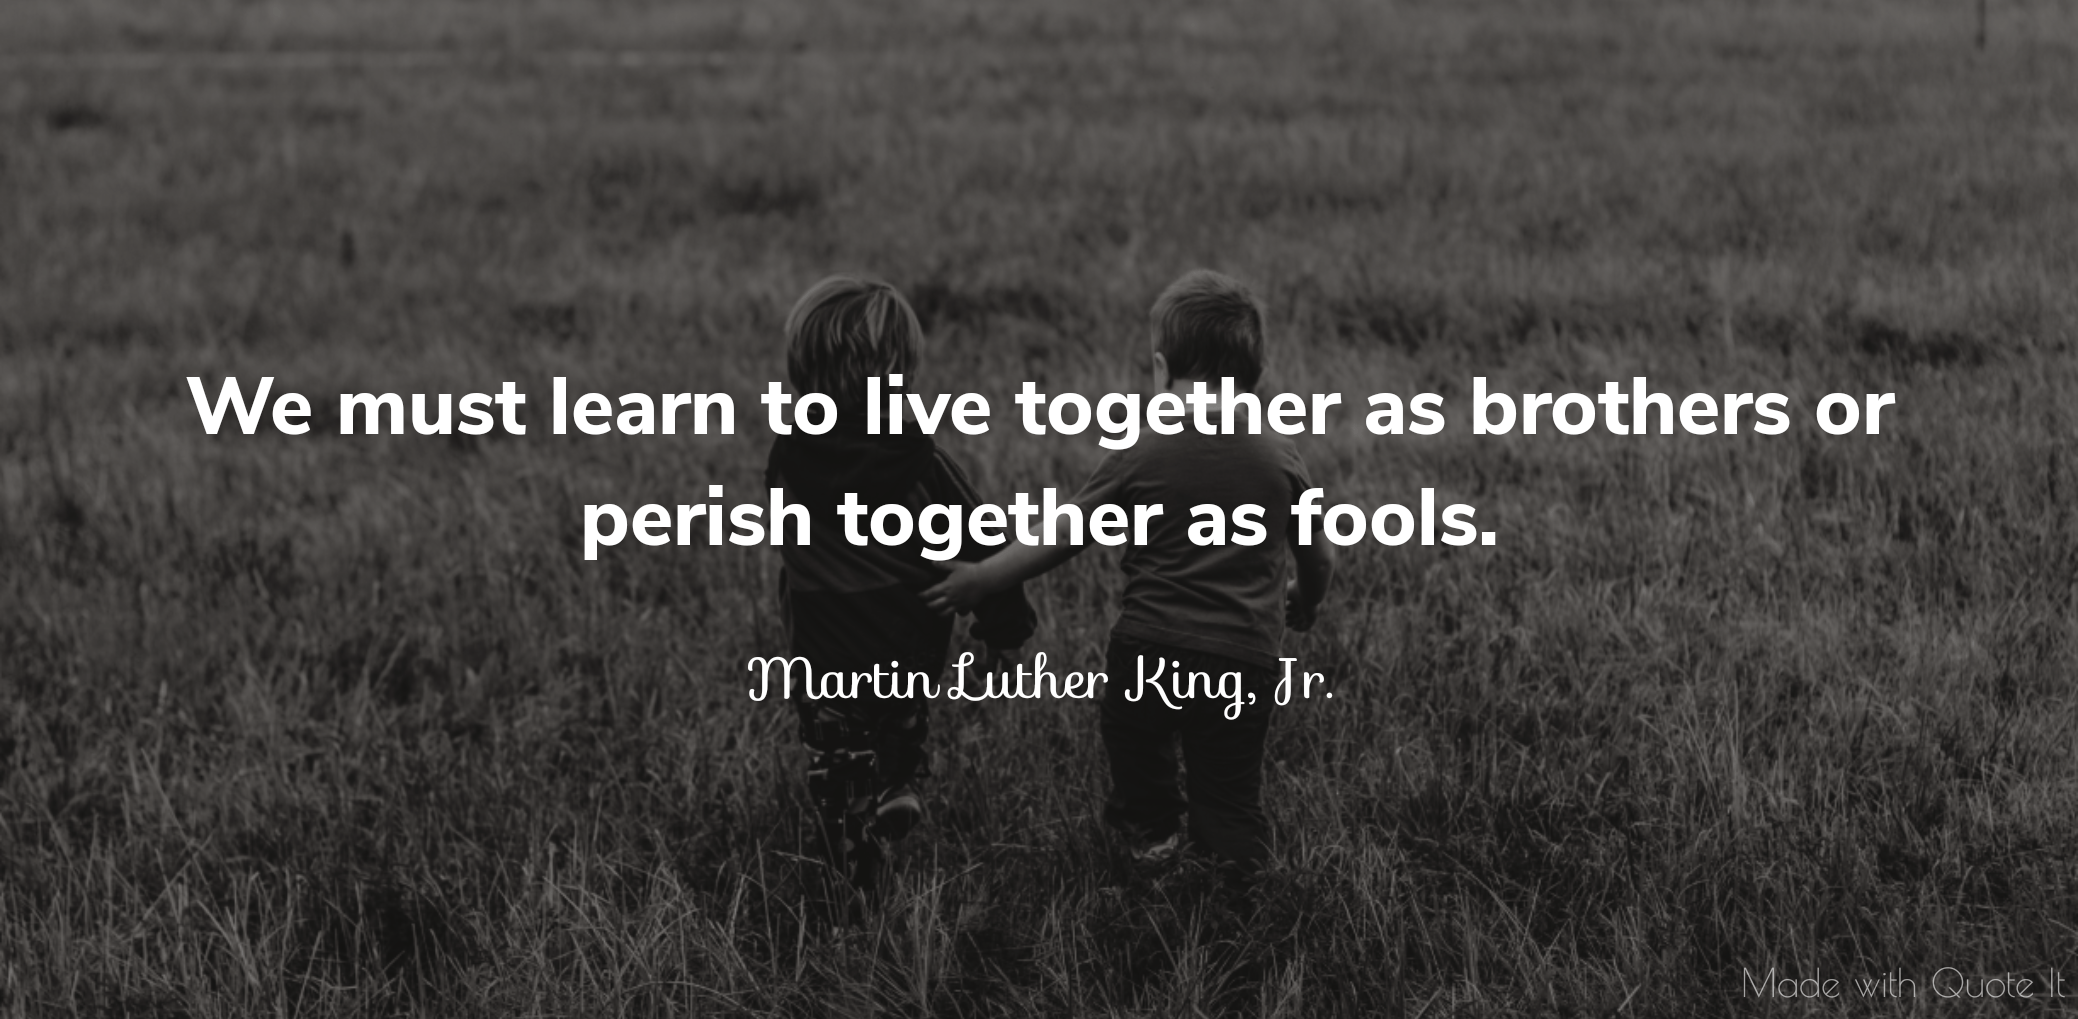 Truth From Dr. Martin Luther King, Jr On His Birthday